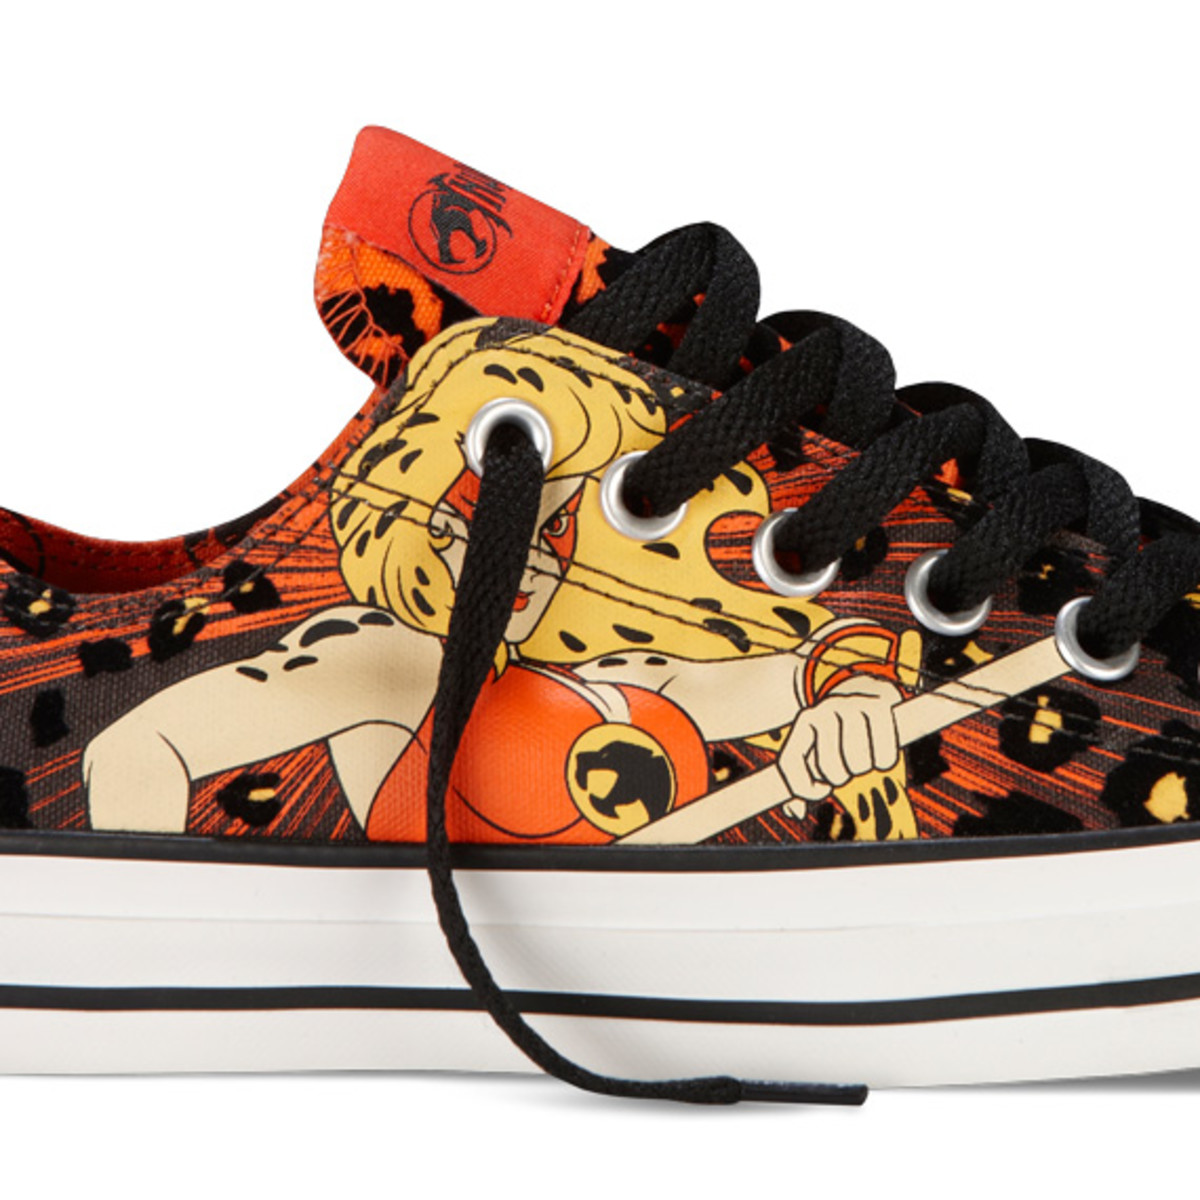 thundercats-converse-chuck-taylor-all-star-ox-cheetara-134540c-02